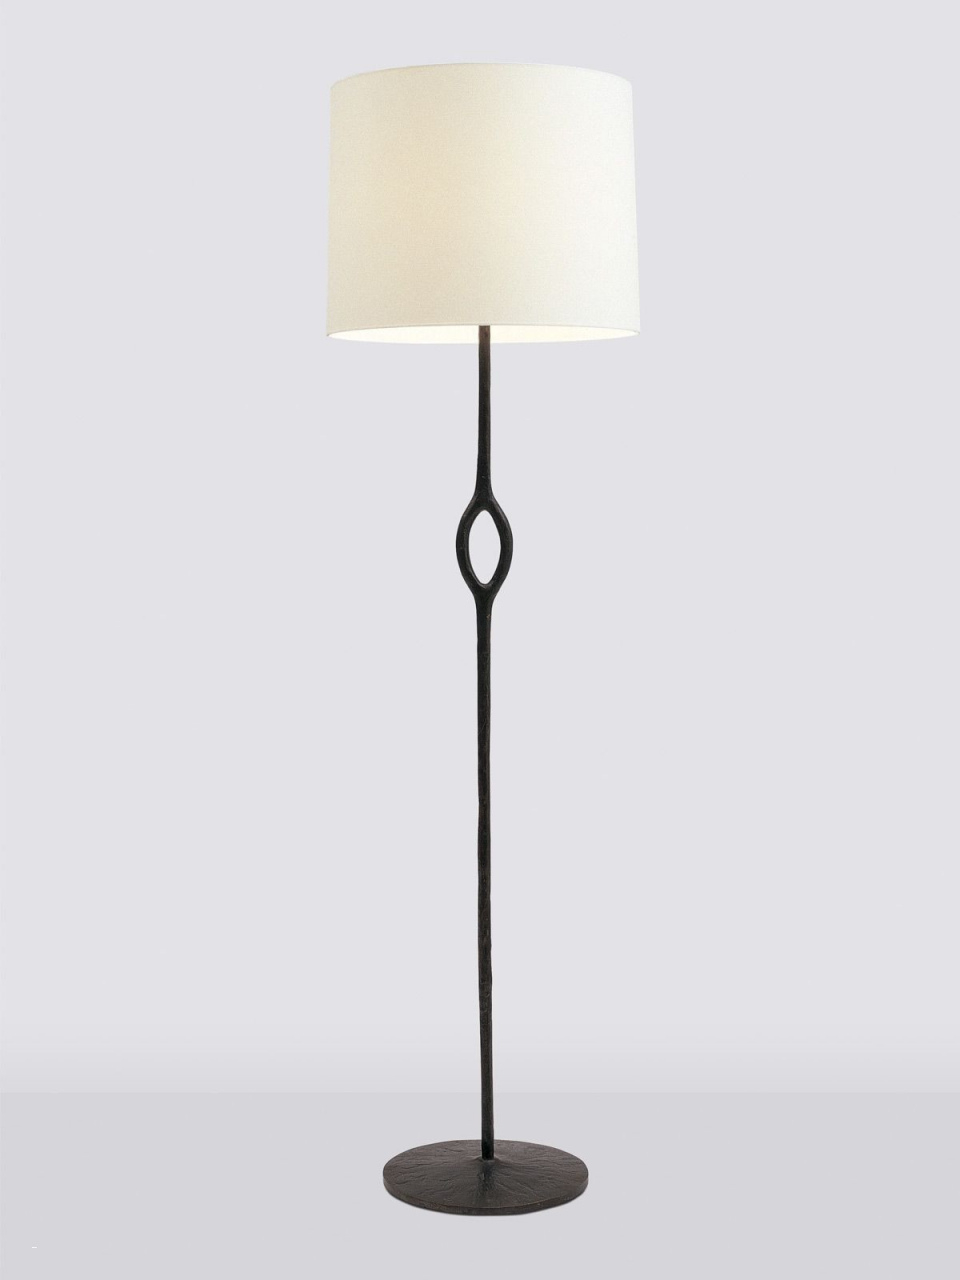 Touch Lamps Bedside Best Table Lamps Luxury Elegant Modern pertaining to proportions 960 X 1280